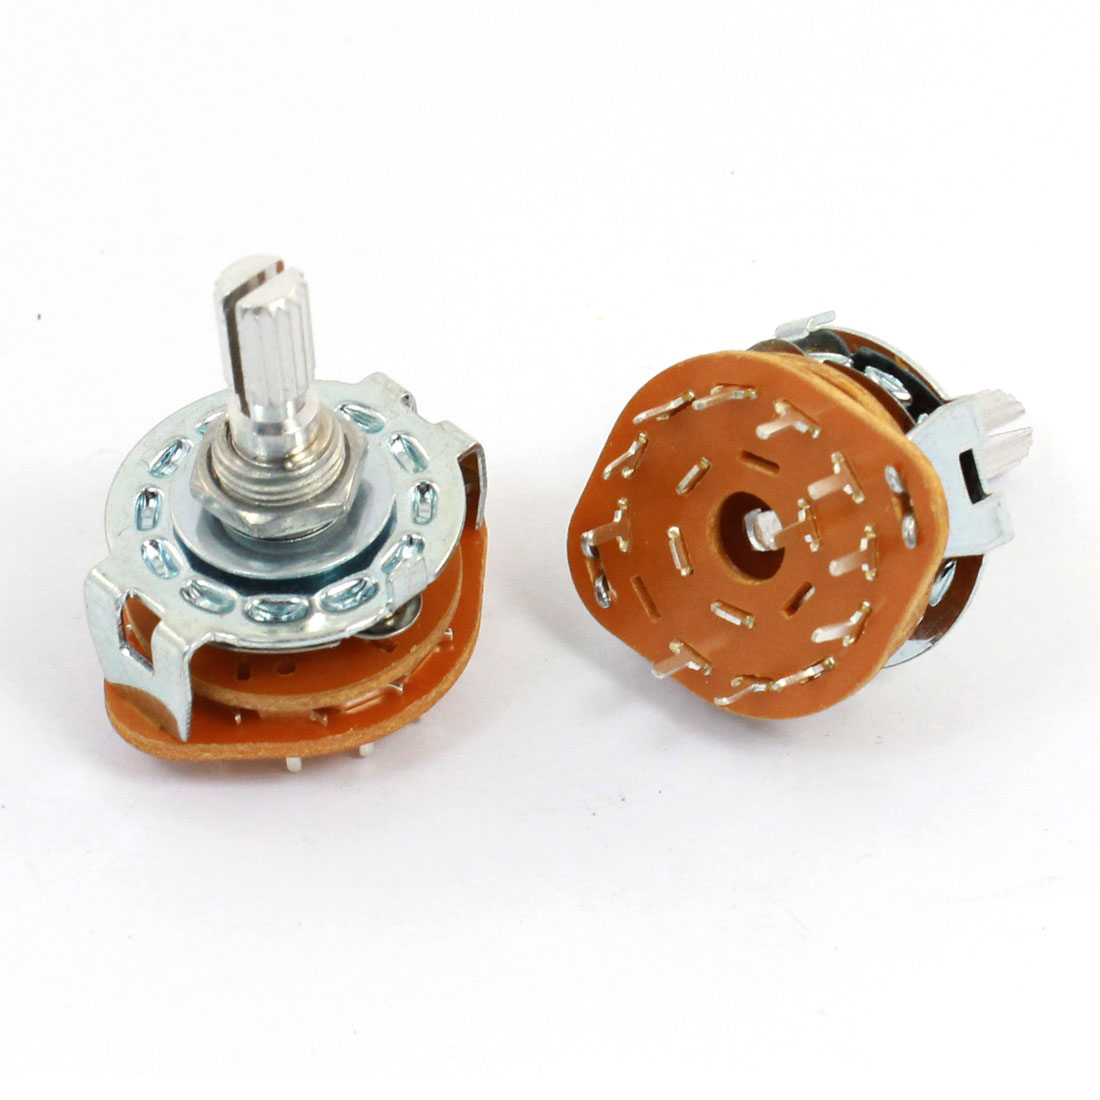 2 Pcs 1P11T 1 Pole 11 Position 6mm Knurled Shaft Dia Band Selector Rotary Switch